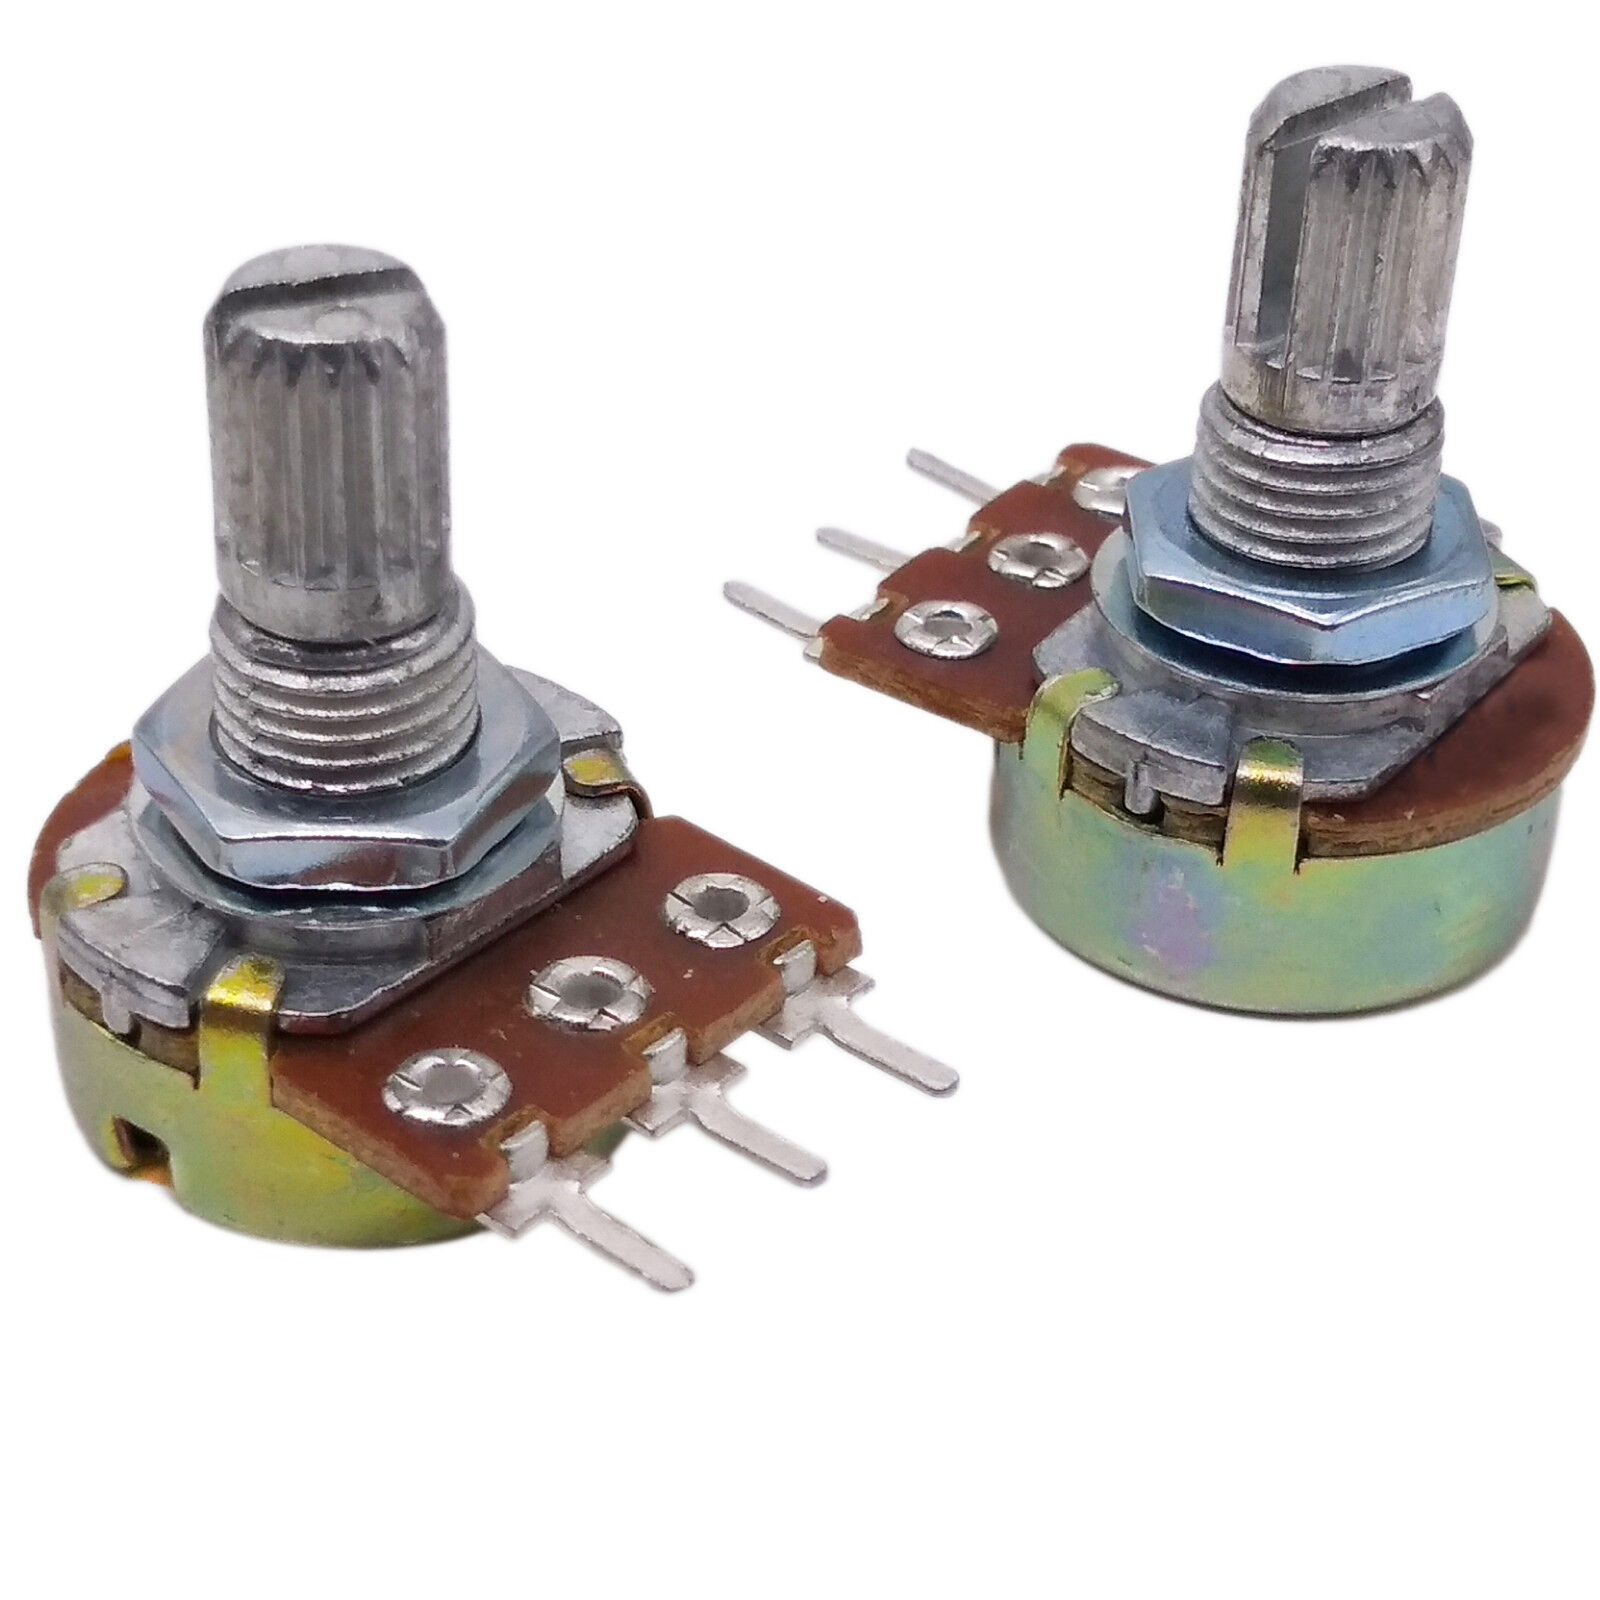 Us Stock 10pcs 220k Ohm Linear Taper Rotary Potentiometer Panel Pot Push Button Switch Latching On Off Dpdt 05a 50vdc 8x8mm B220k 15mm